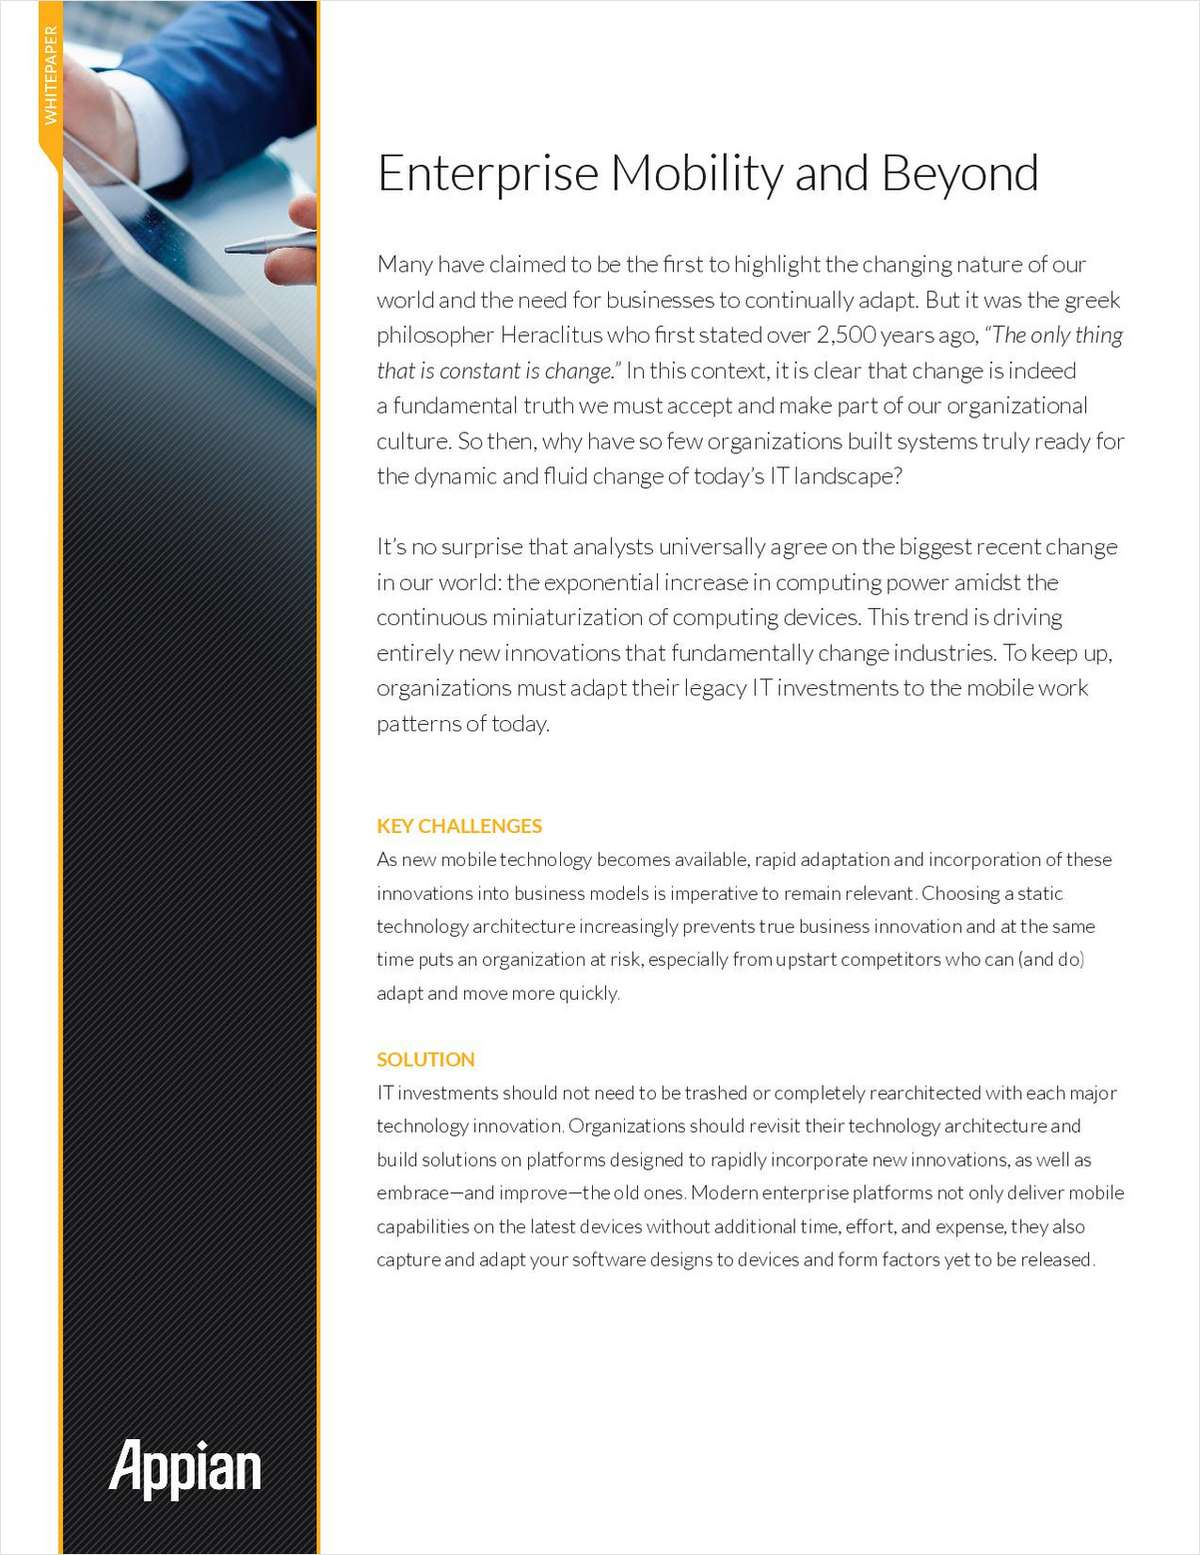 Enterprise Mobility and Beyond